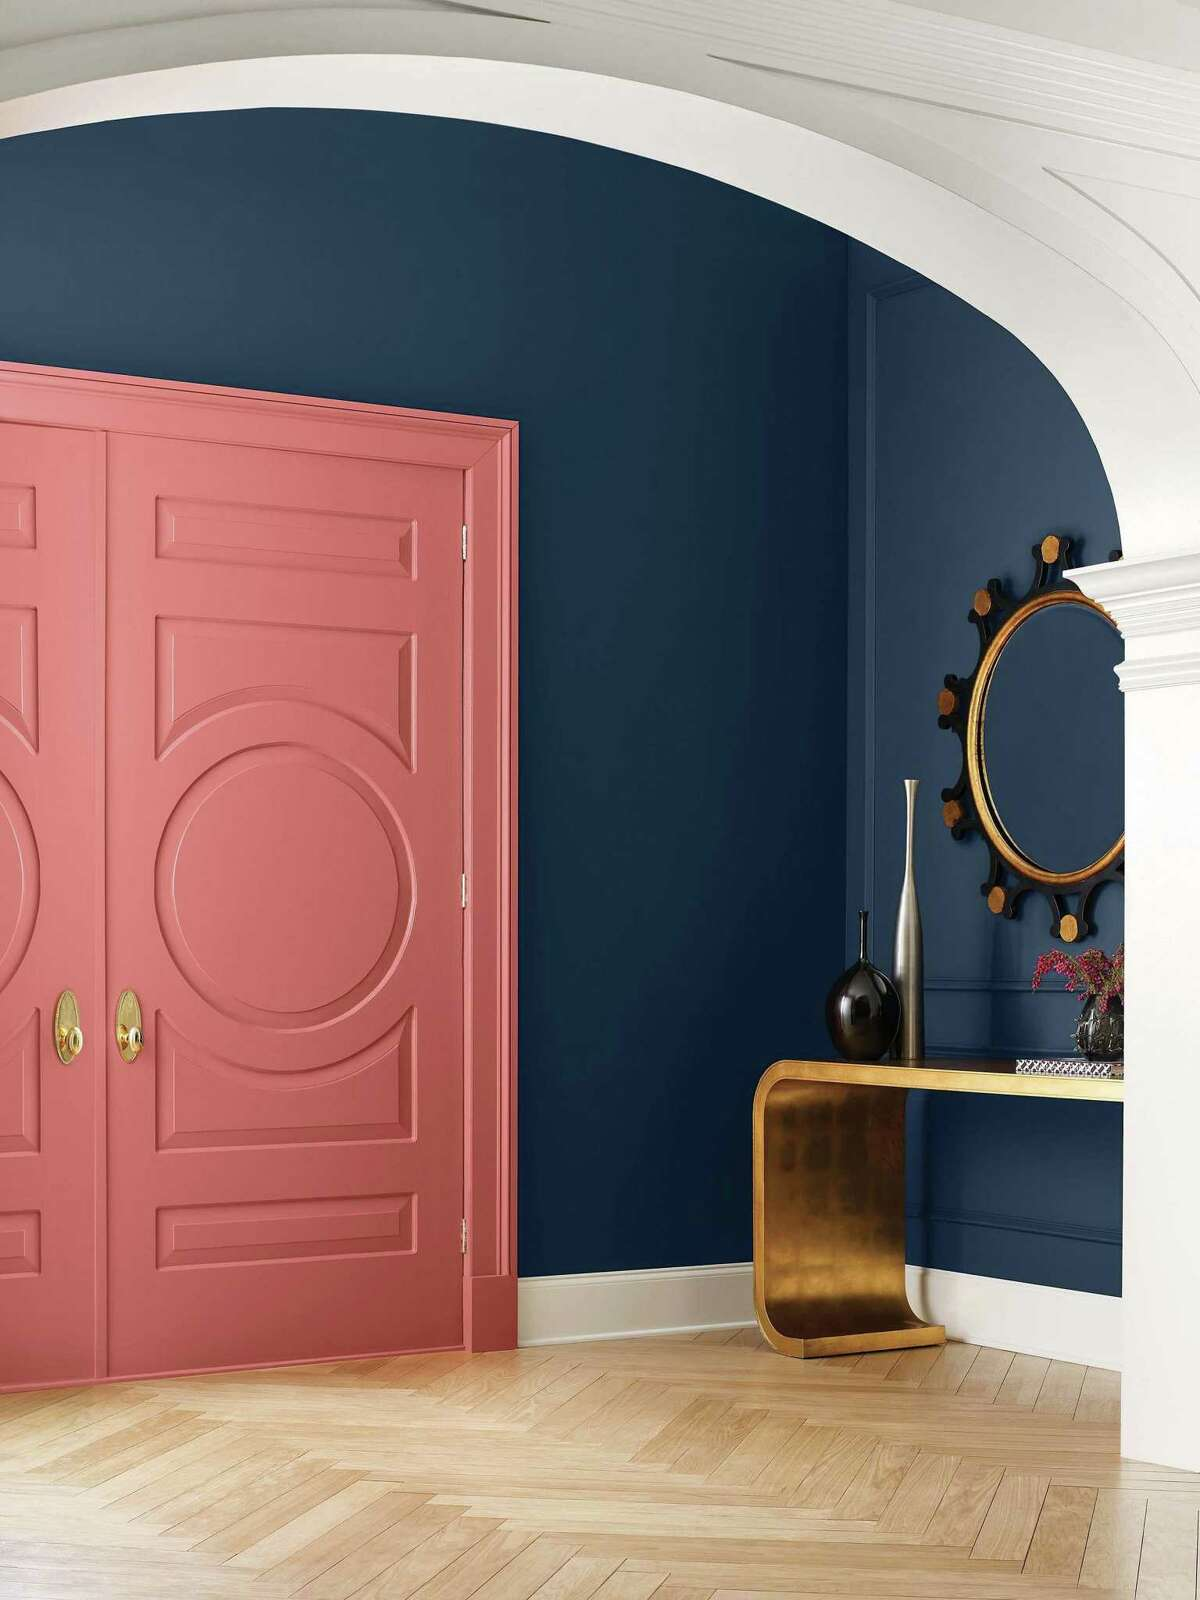 """Sherwin-Williams uses """"Coral Clay"""" on doors and """"Naval"""" on walls from its Opus Palette in its 2022 Colormix Forecast."""